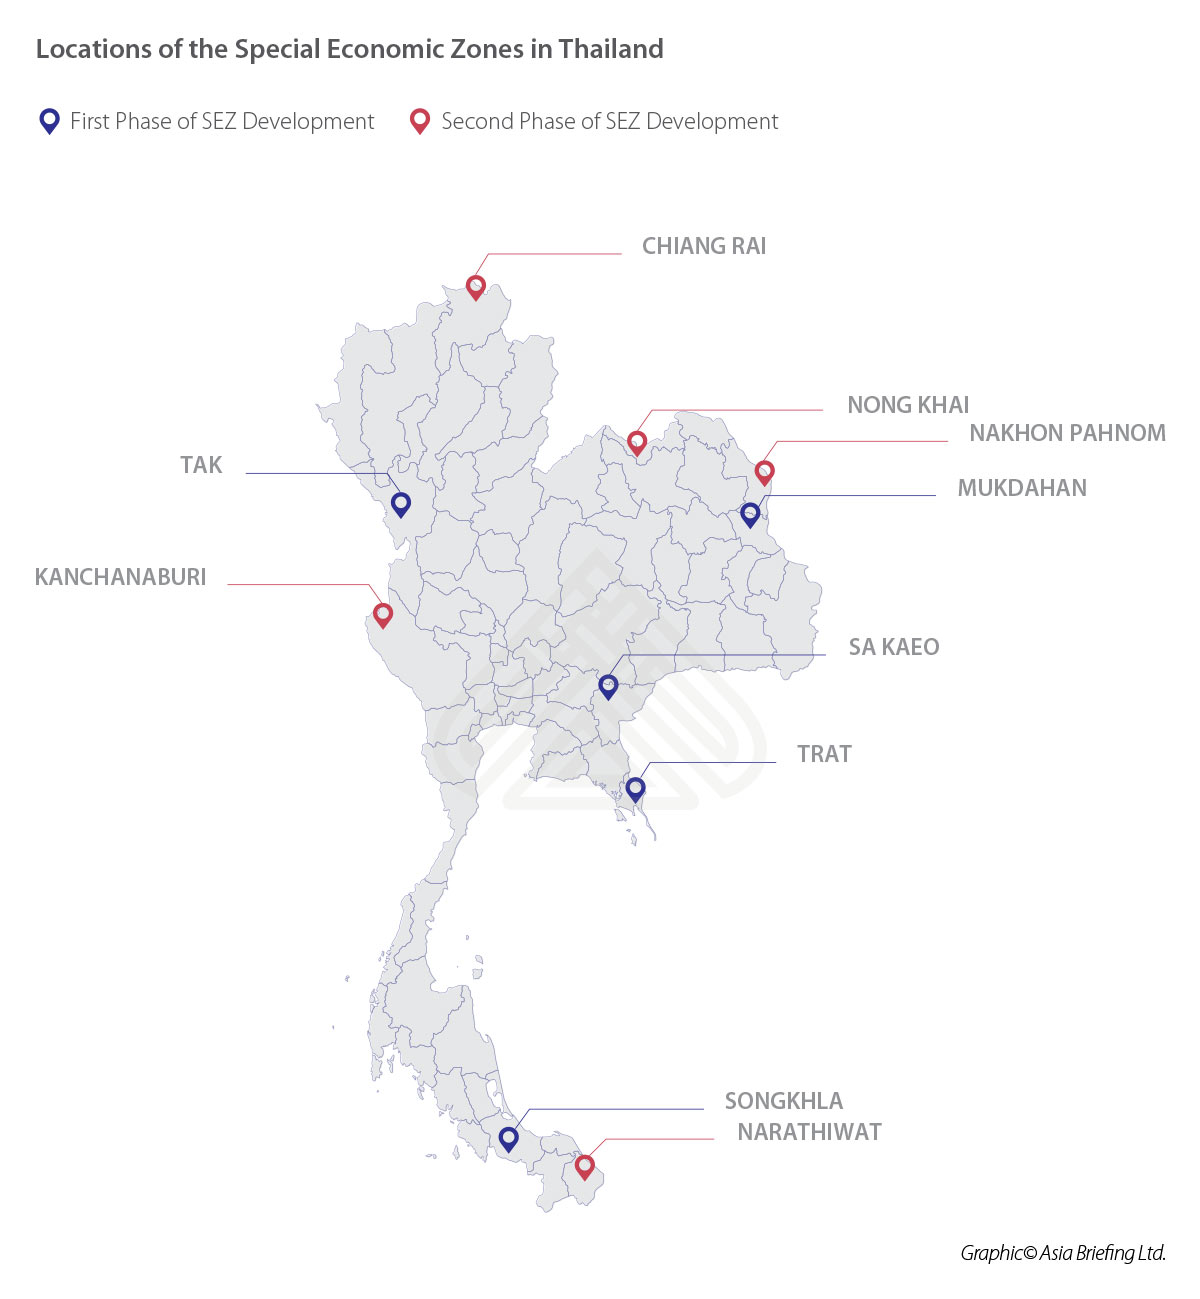 ASB-Locations-of-the-Special-Economic-Zones-in-Thailand (003)